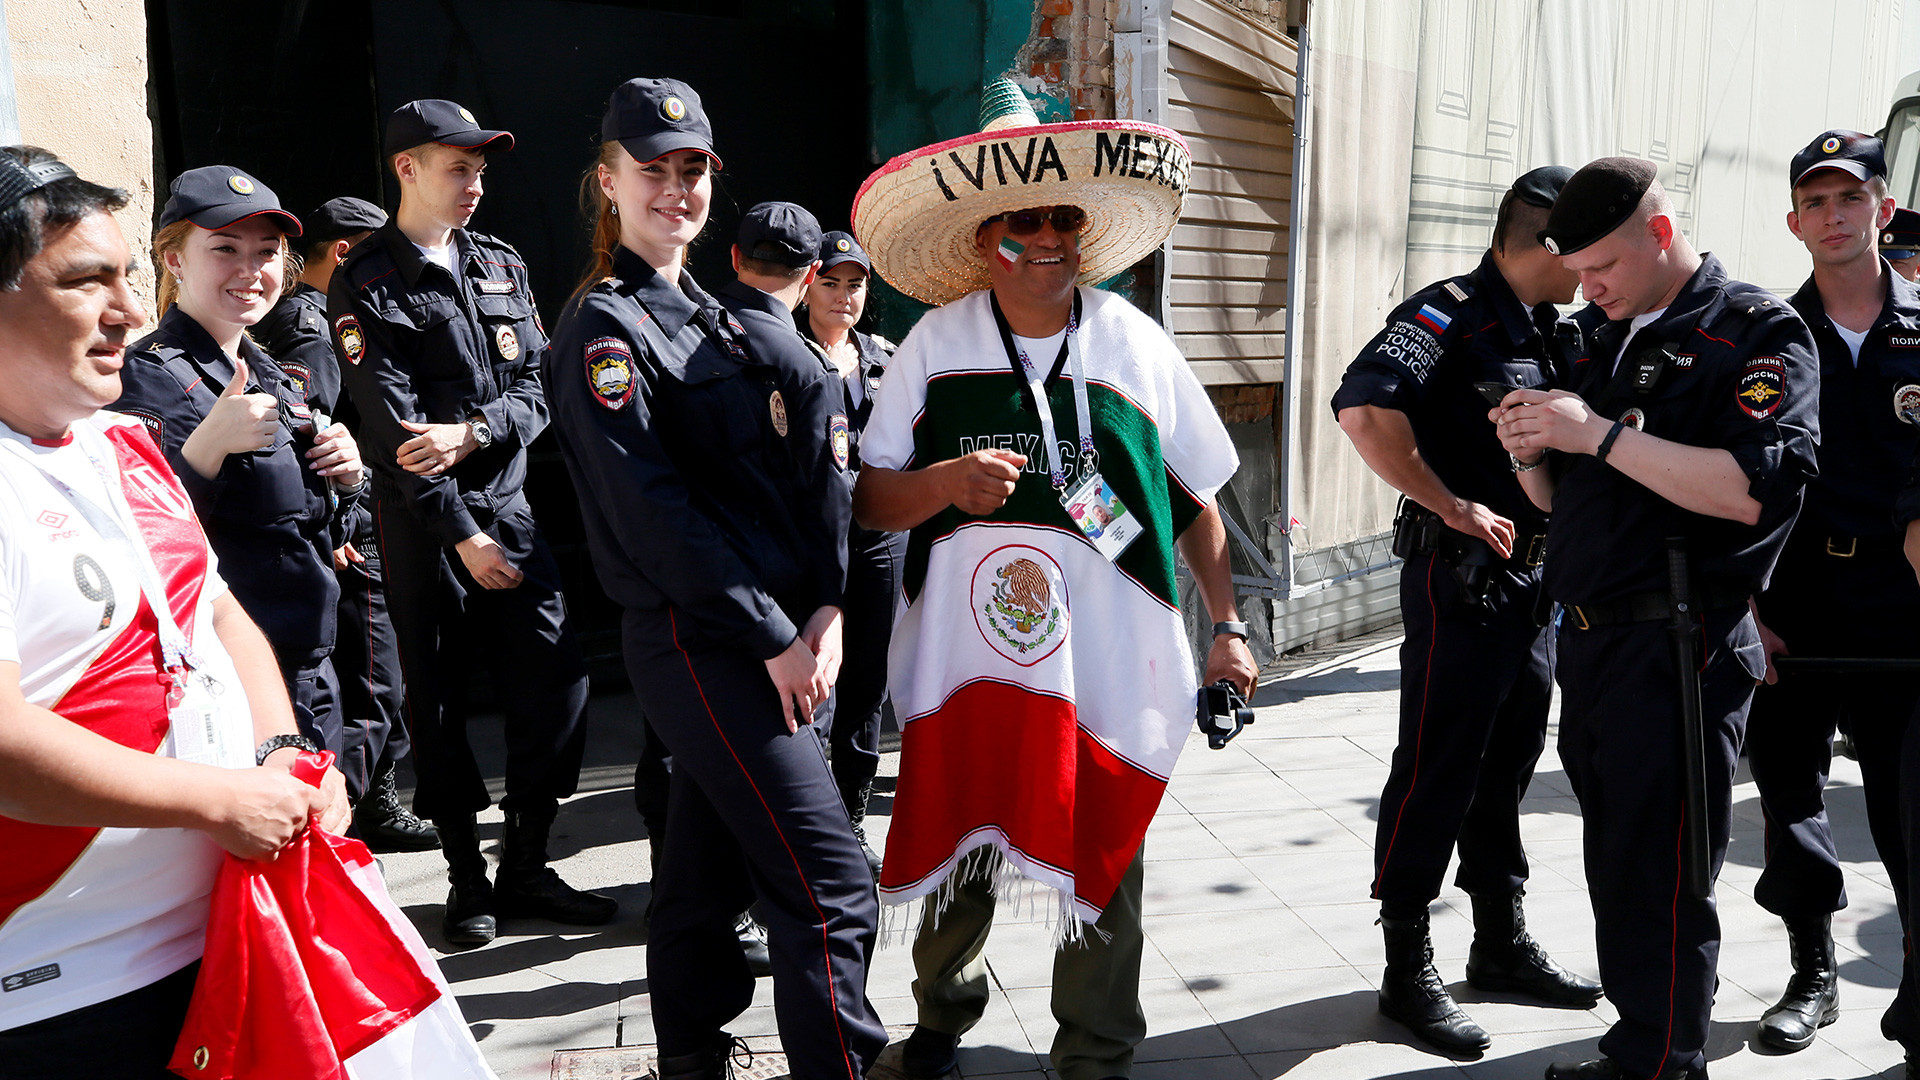 Supporters of the Mexican and Peruvian national teams, participants of the World Cup, and Russian police officers in central Moscow, Russia, June 15, 2018.